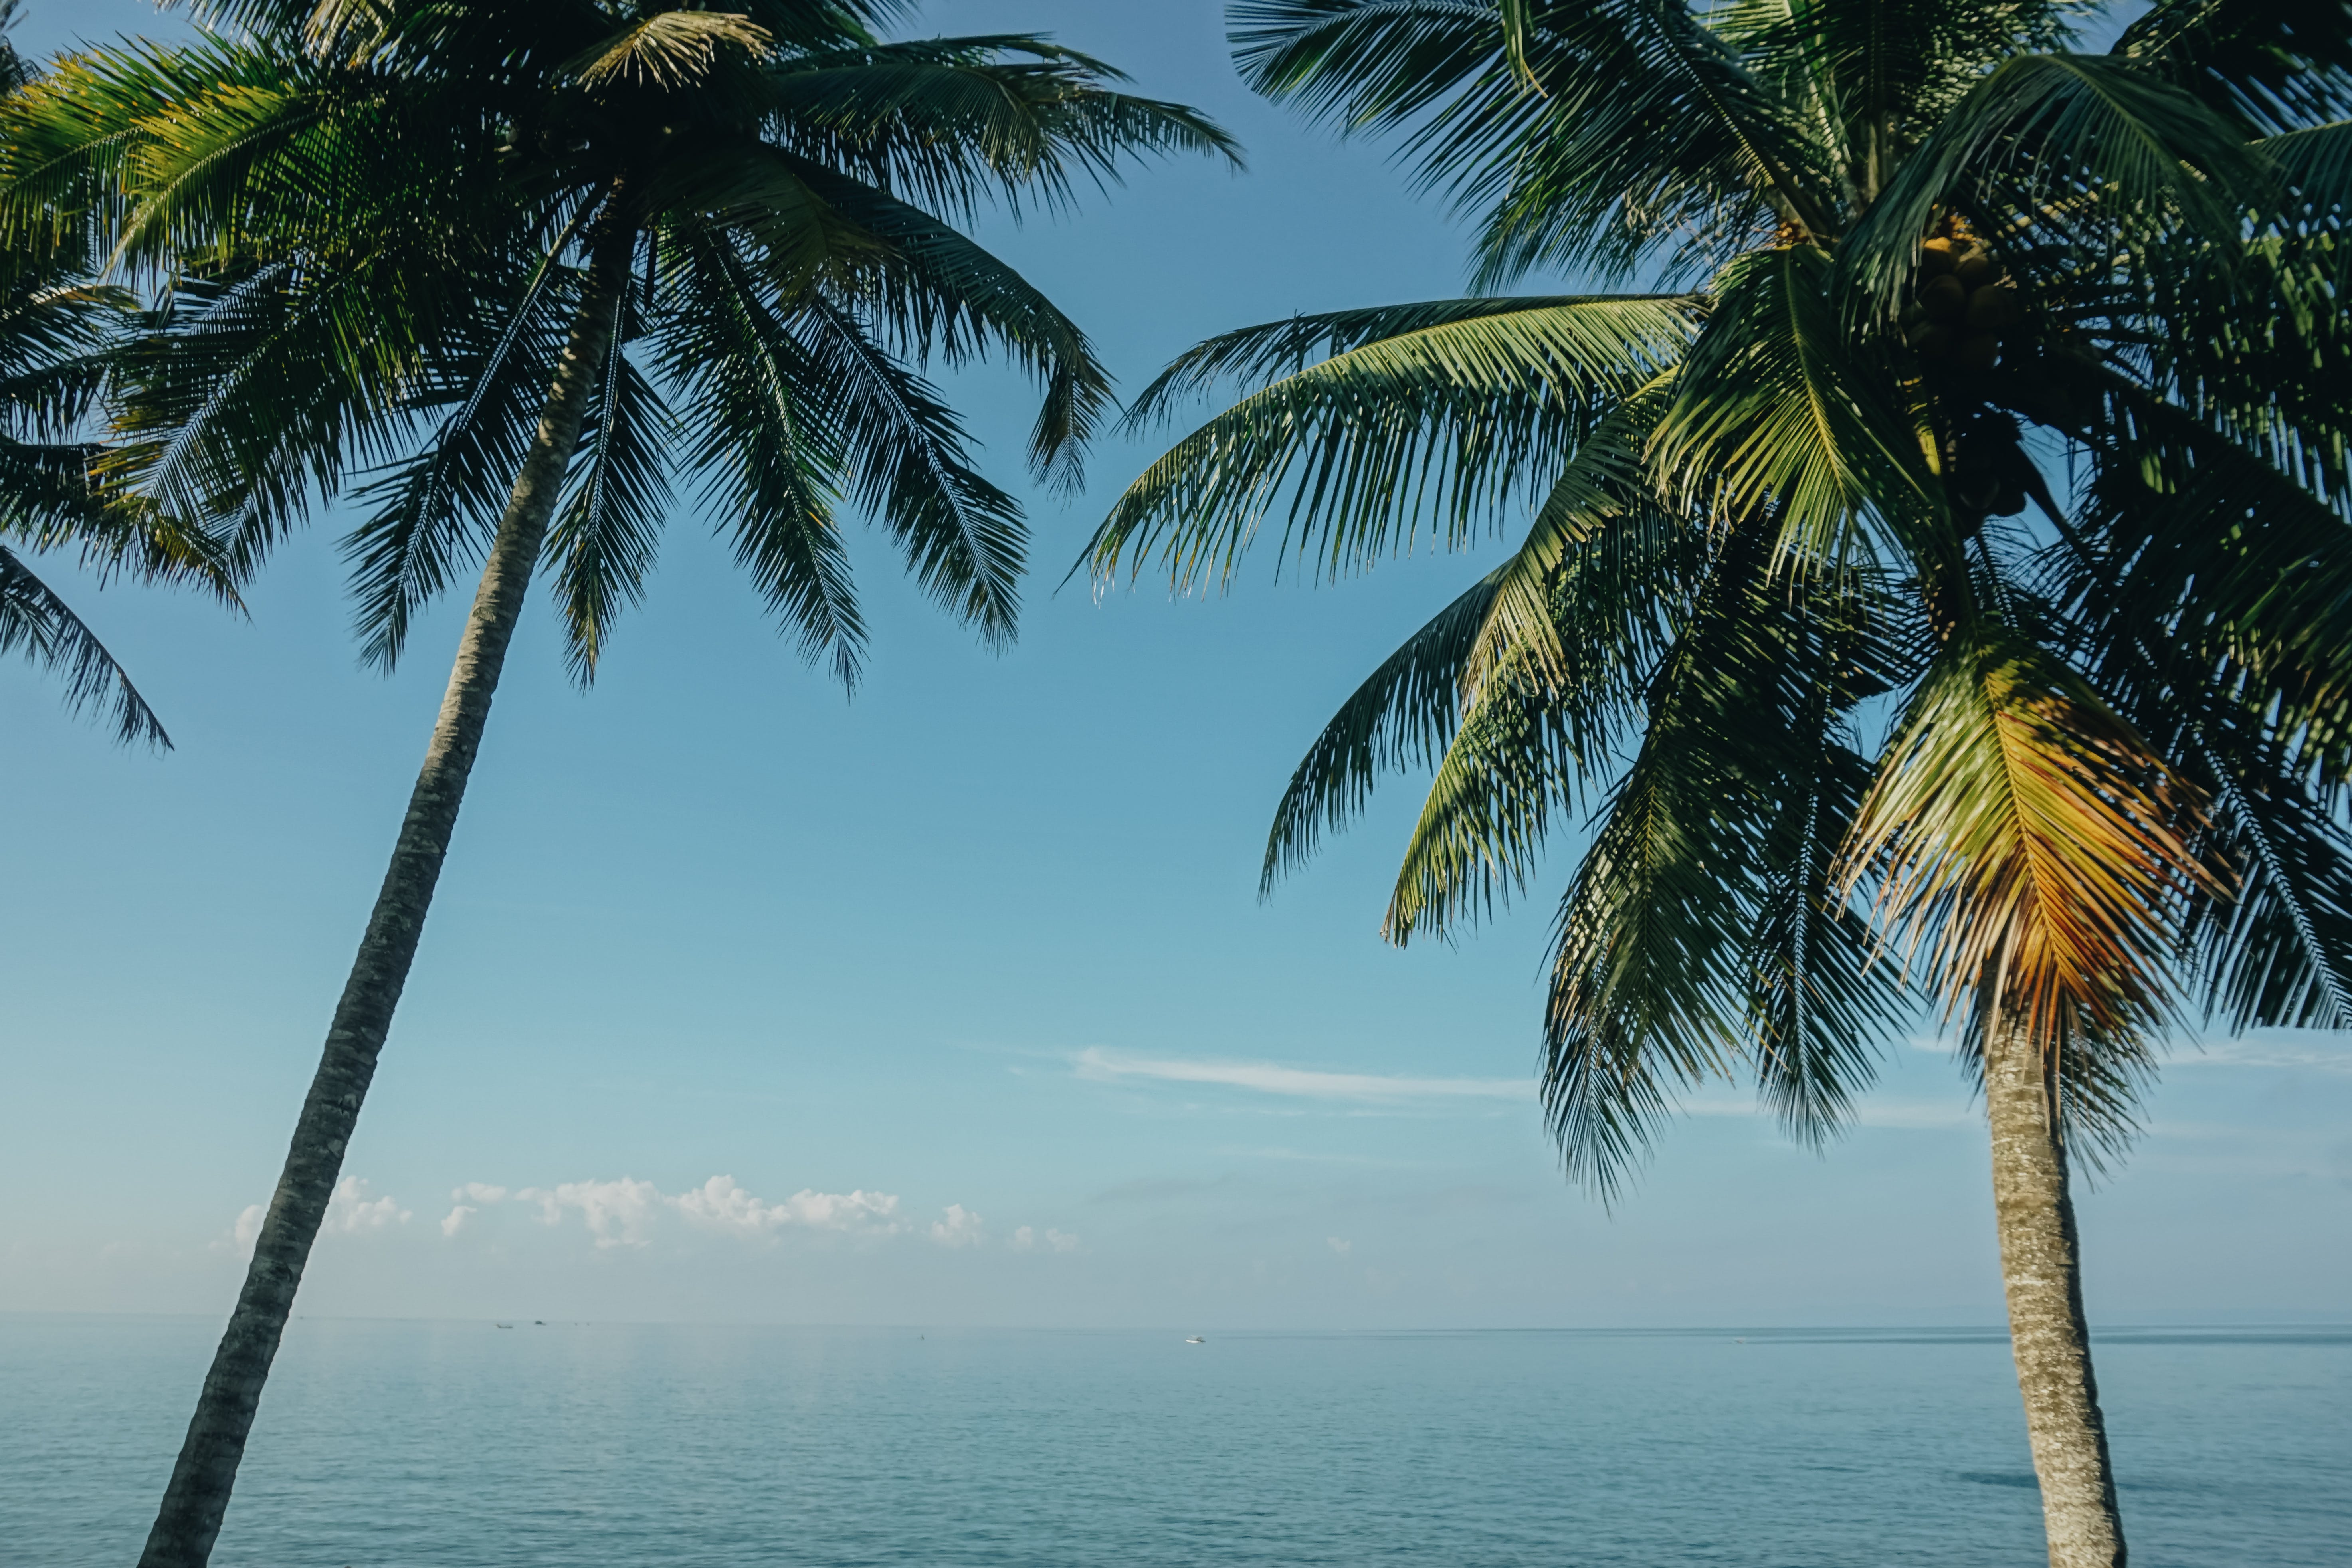 Two Coconut Trees Near Sea